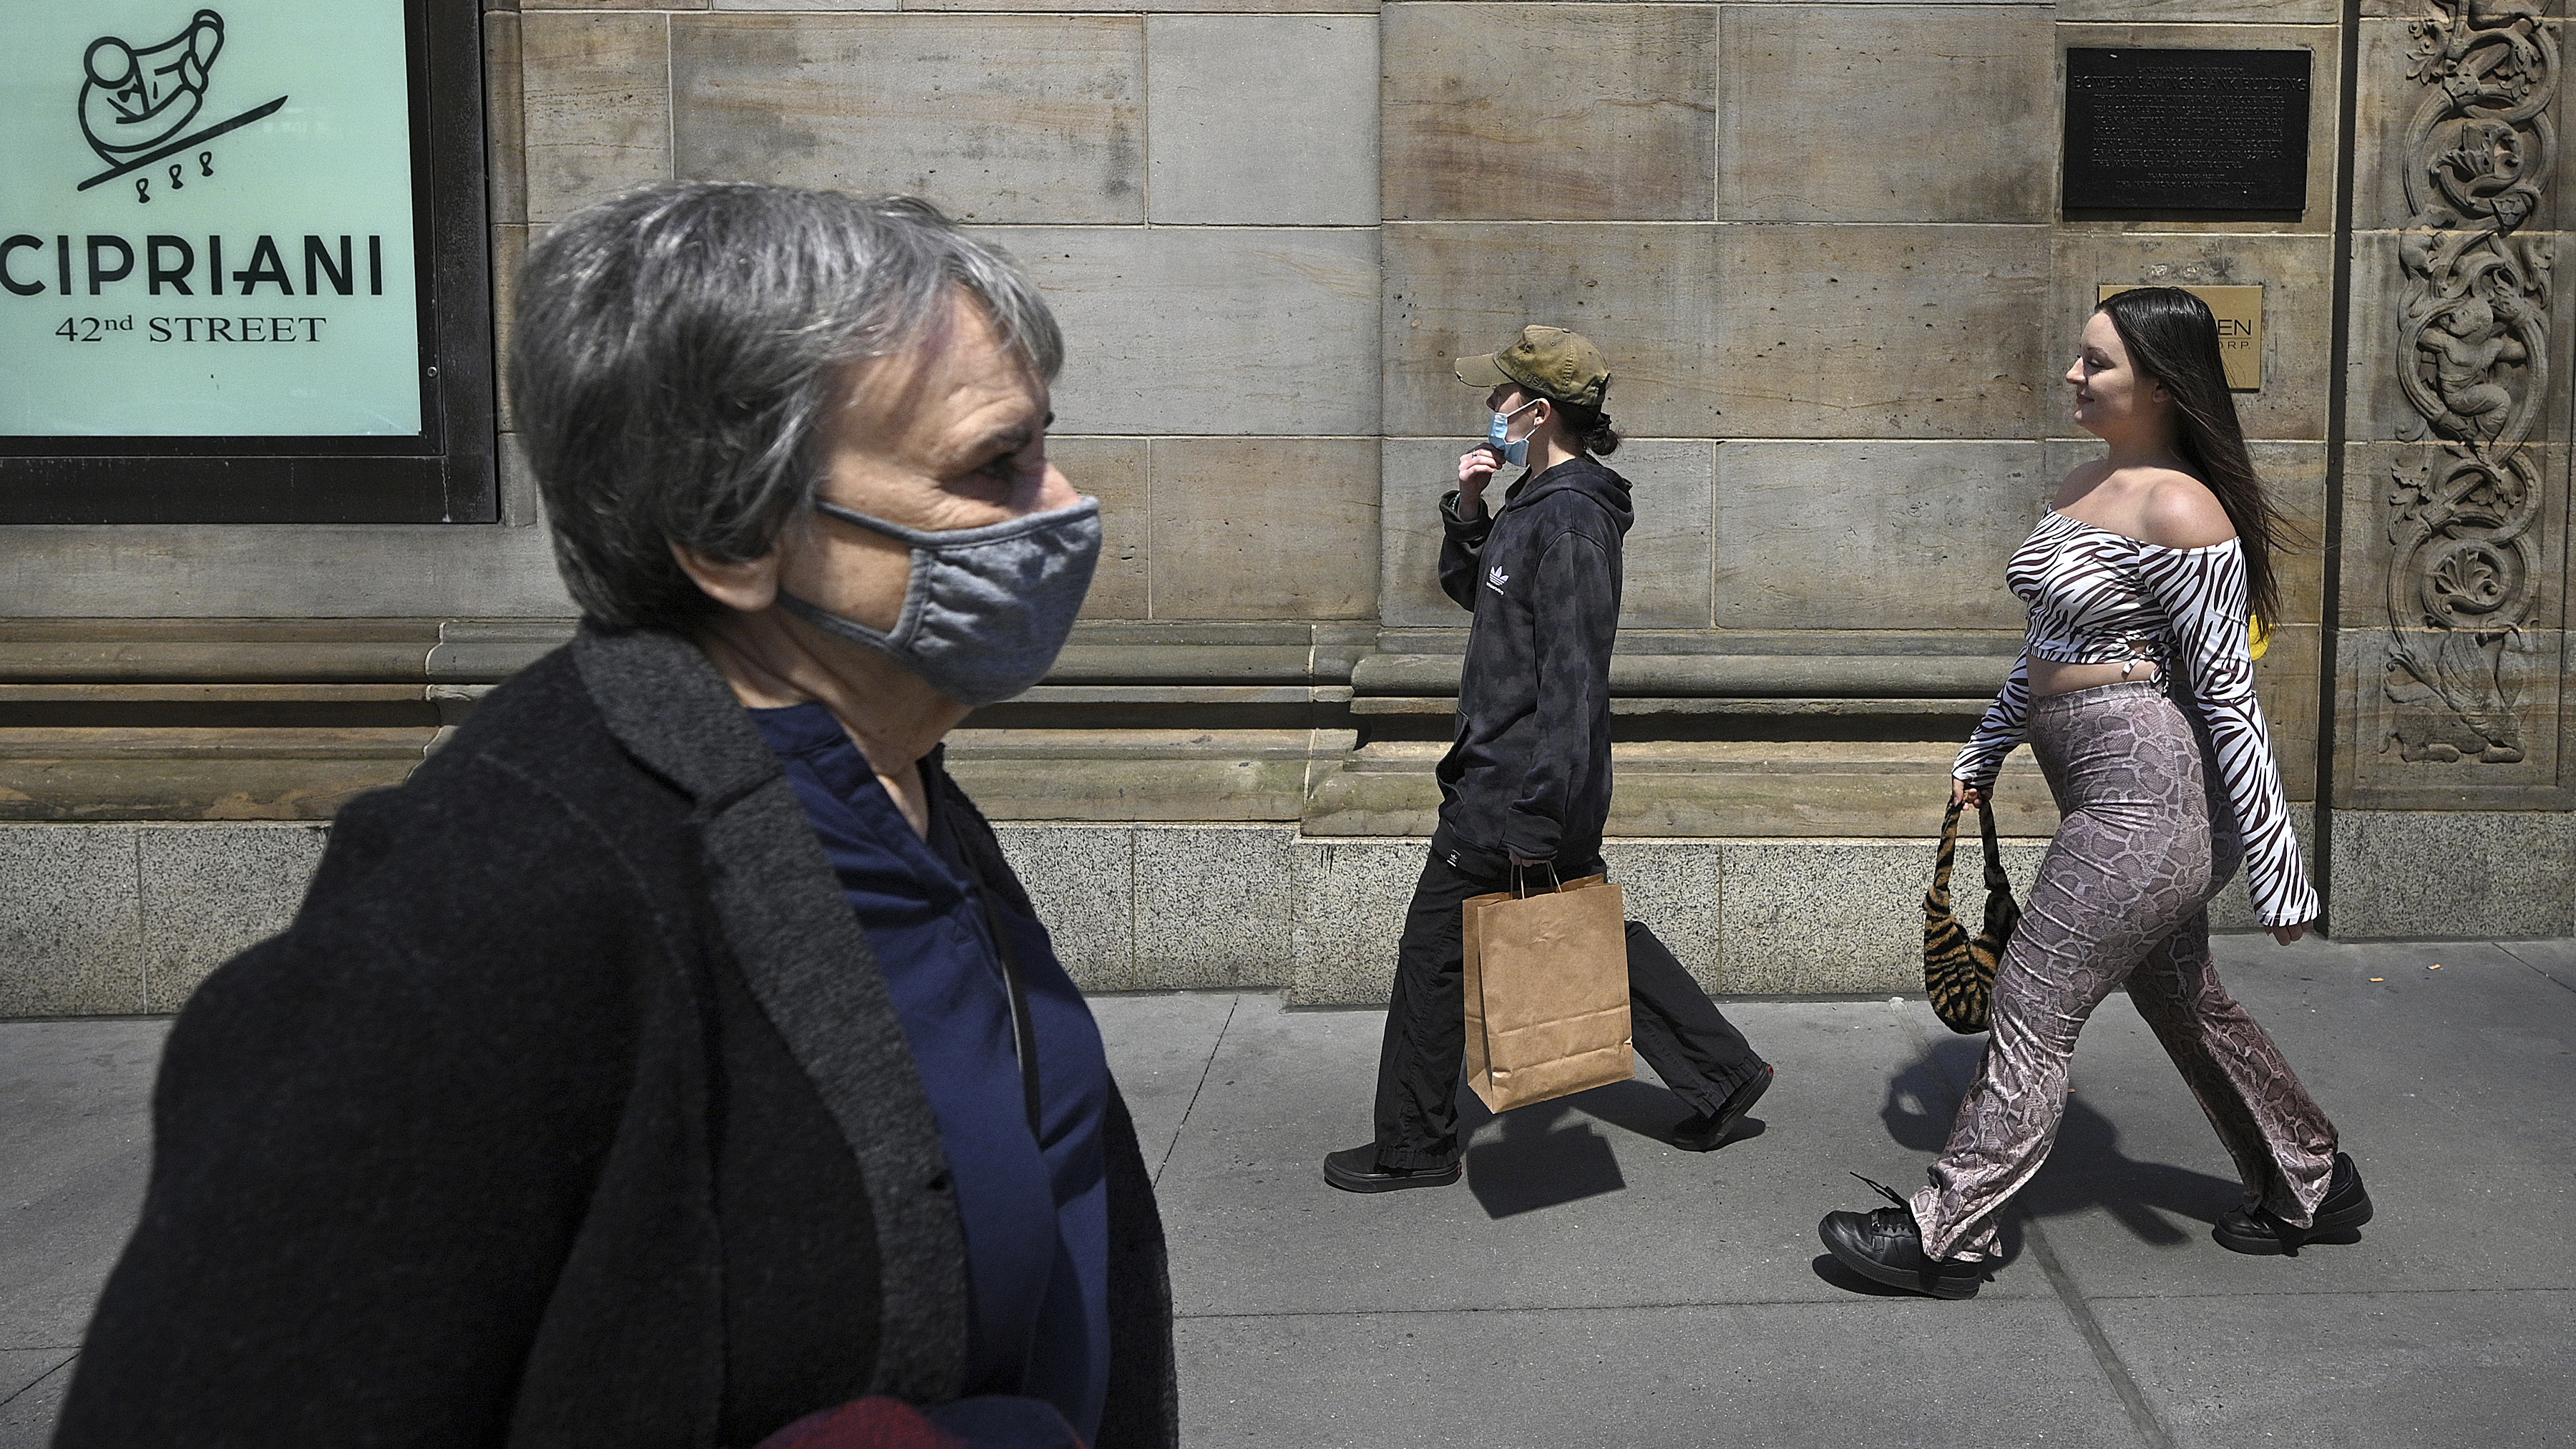 'Asserting power when they don't have any': GOP governors move to ban mask mandates in schools